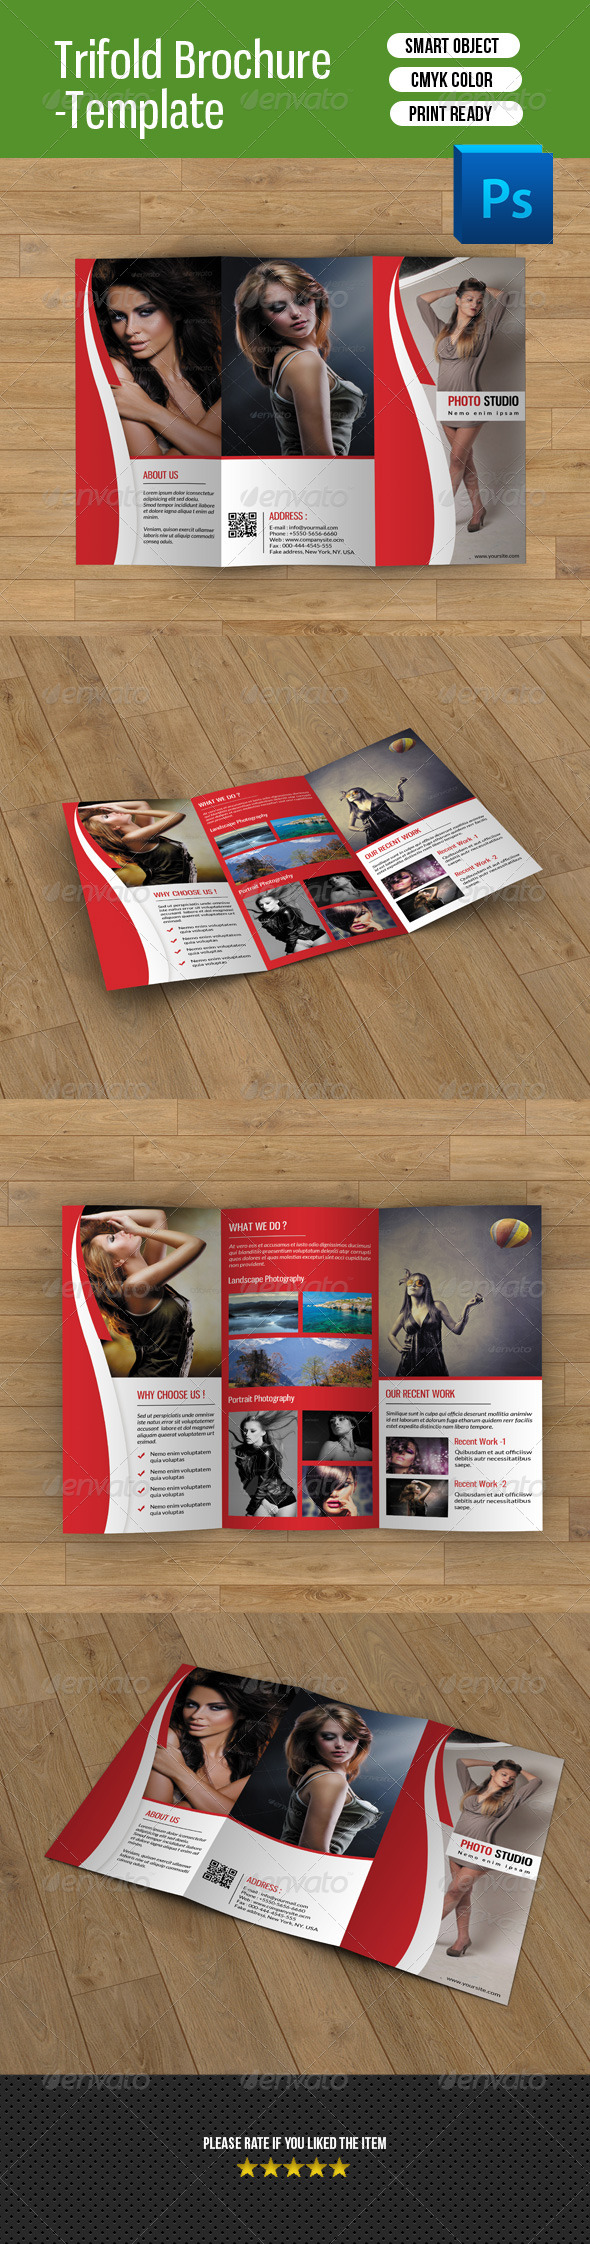 GraphicRiver Trifold Brochure for Photography-V56 8662204